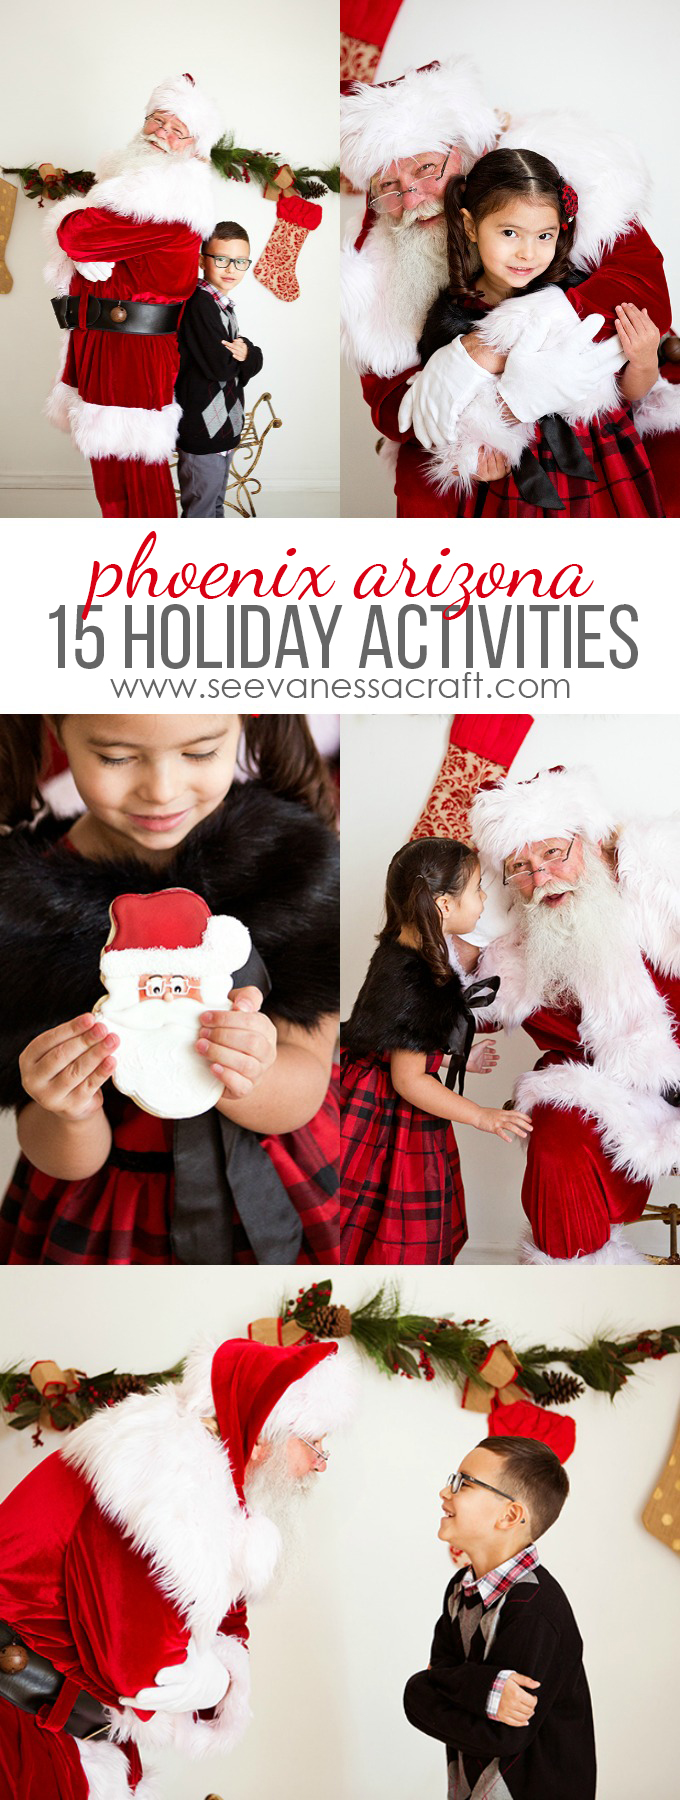 15-things-to-do-in-phoenix-arizona-for-christmas